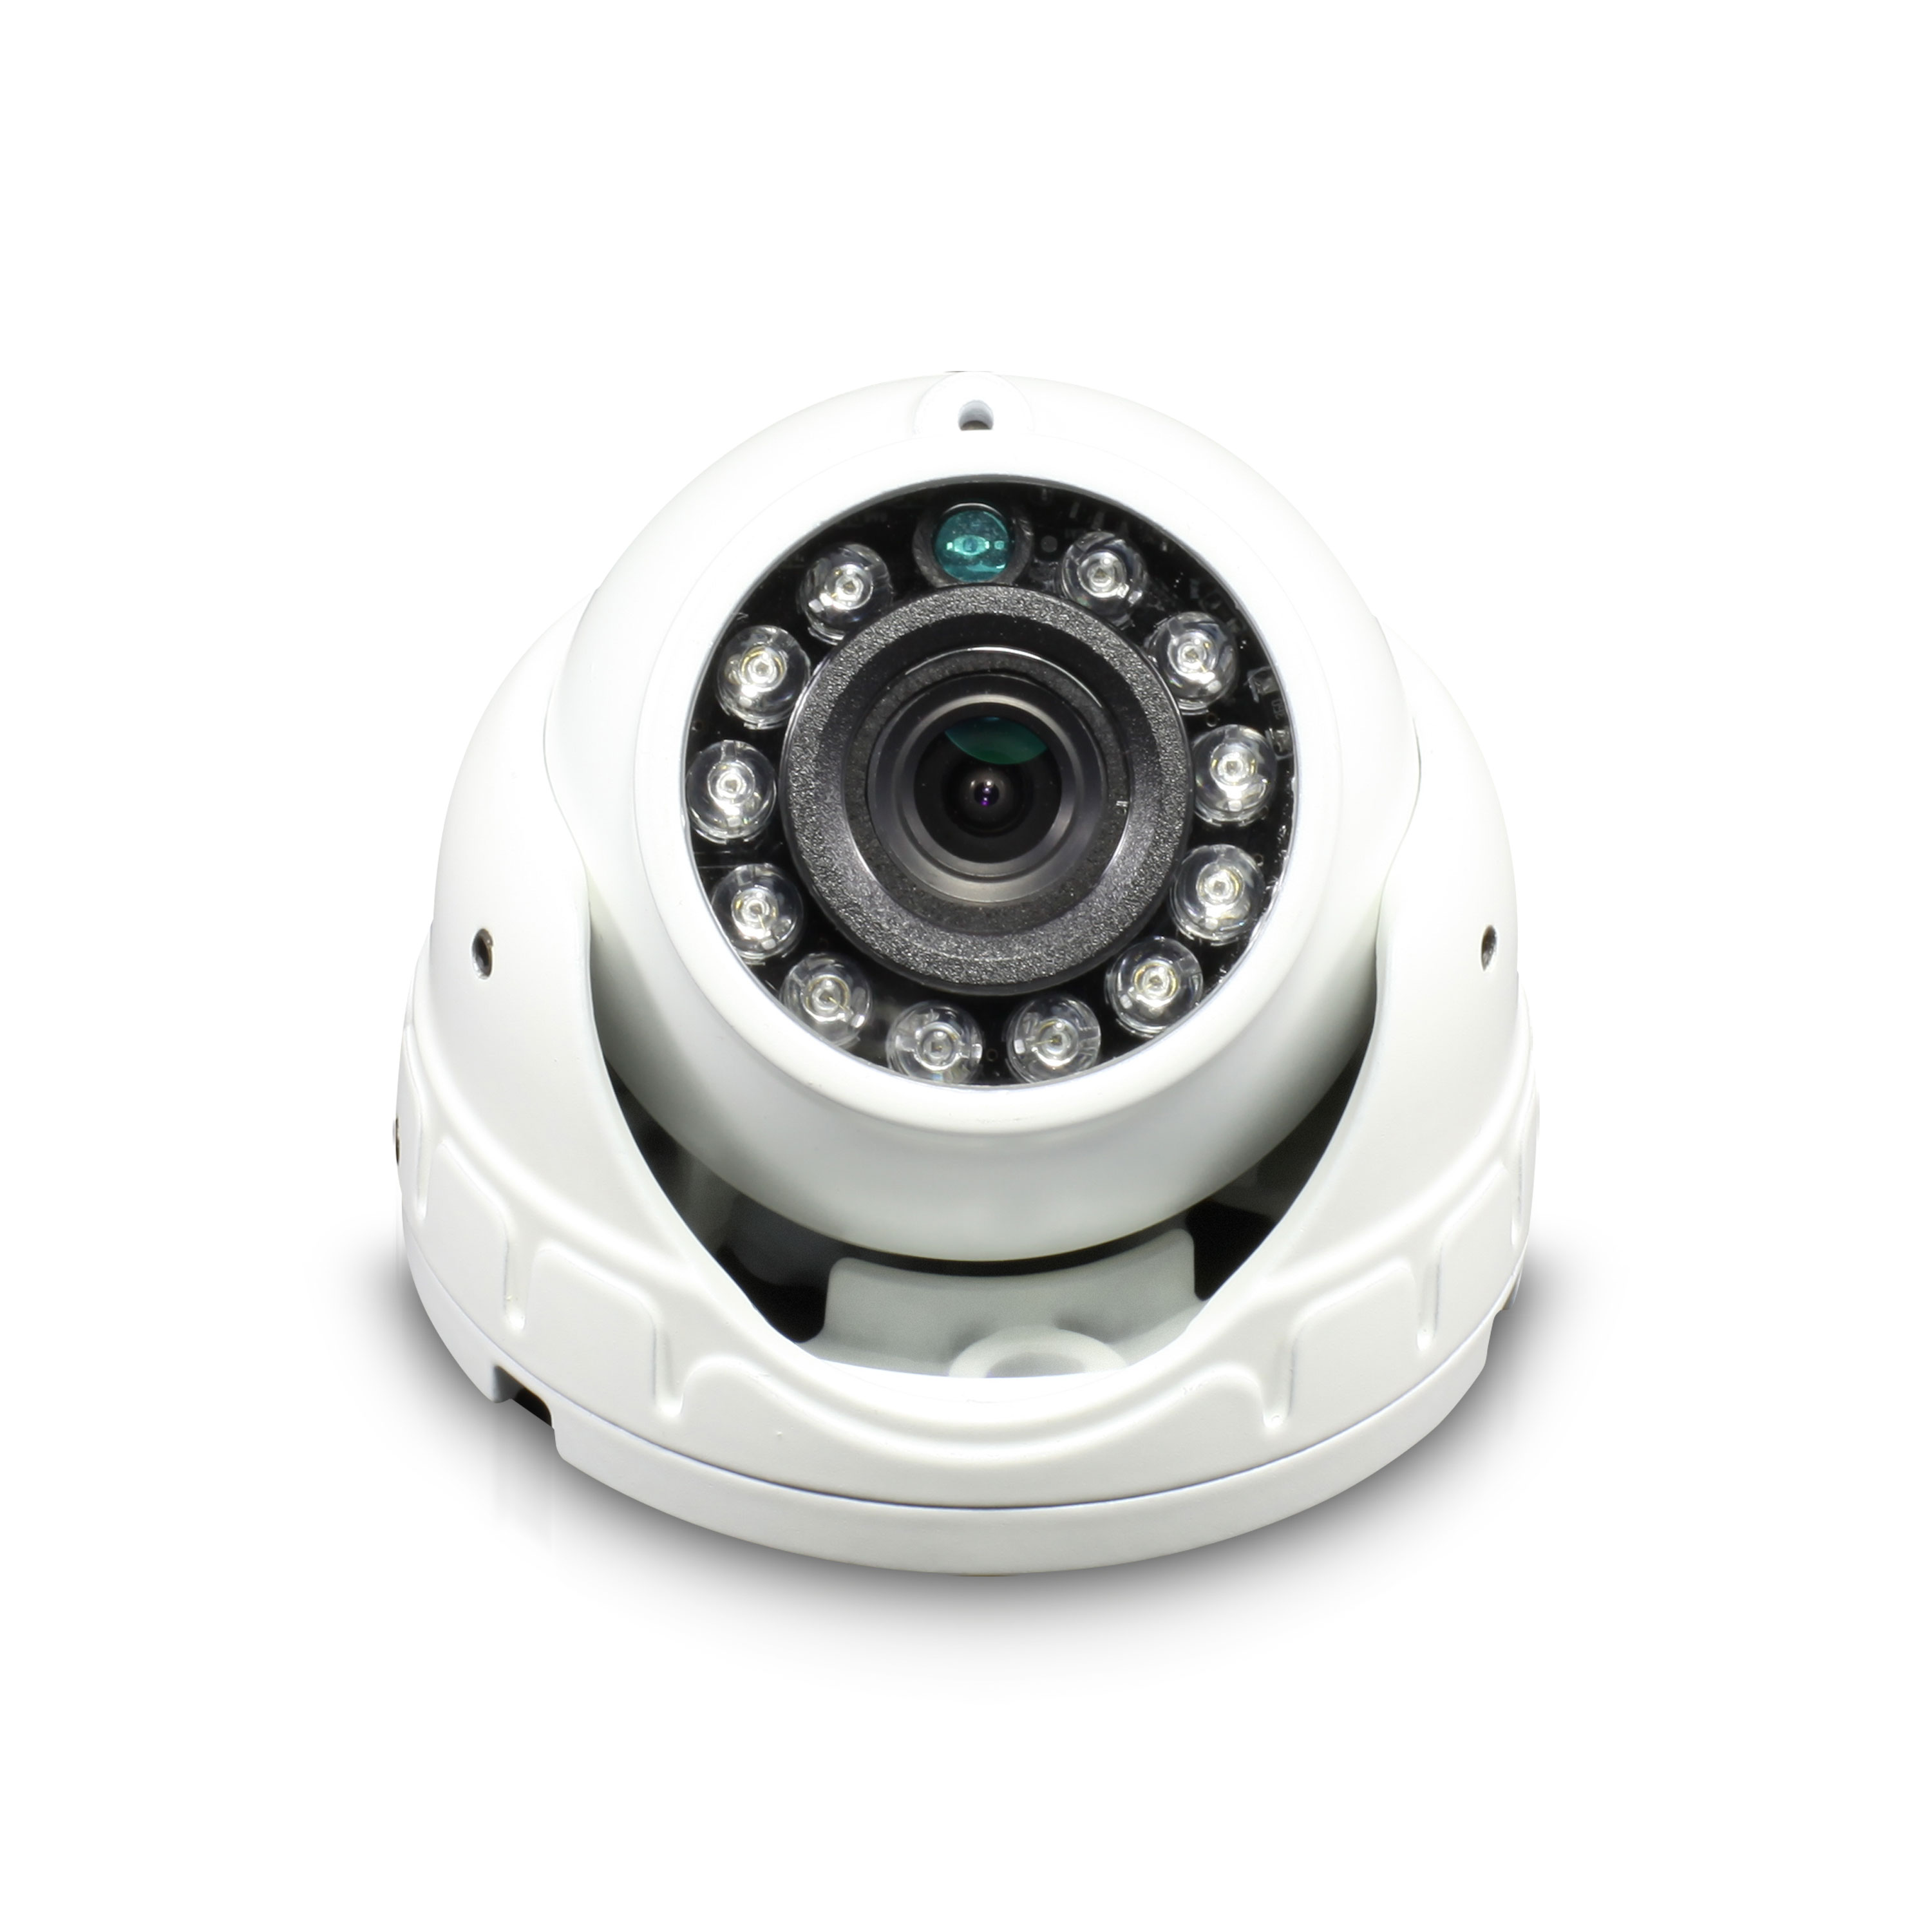 Swann Outdoor Security Camera 1080p Full Hd Mini Dome